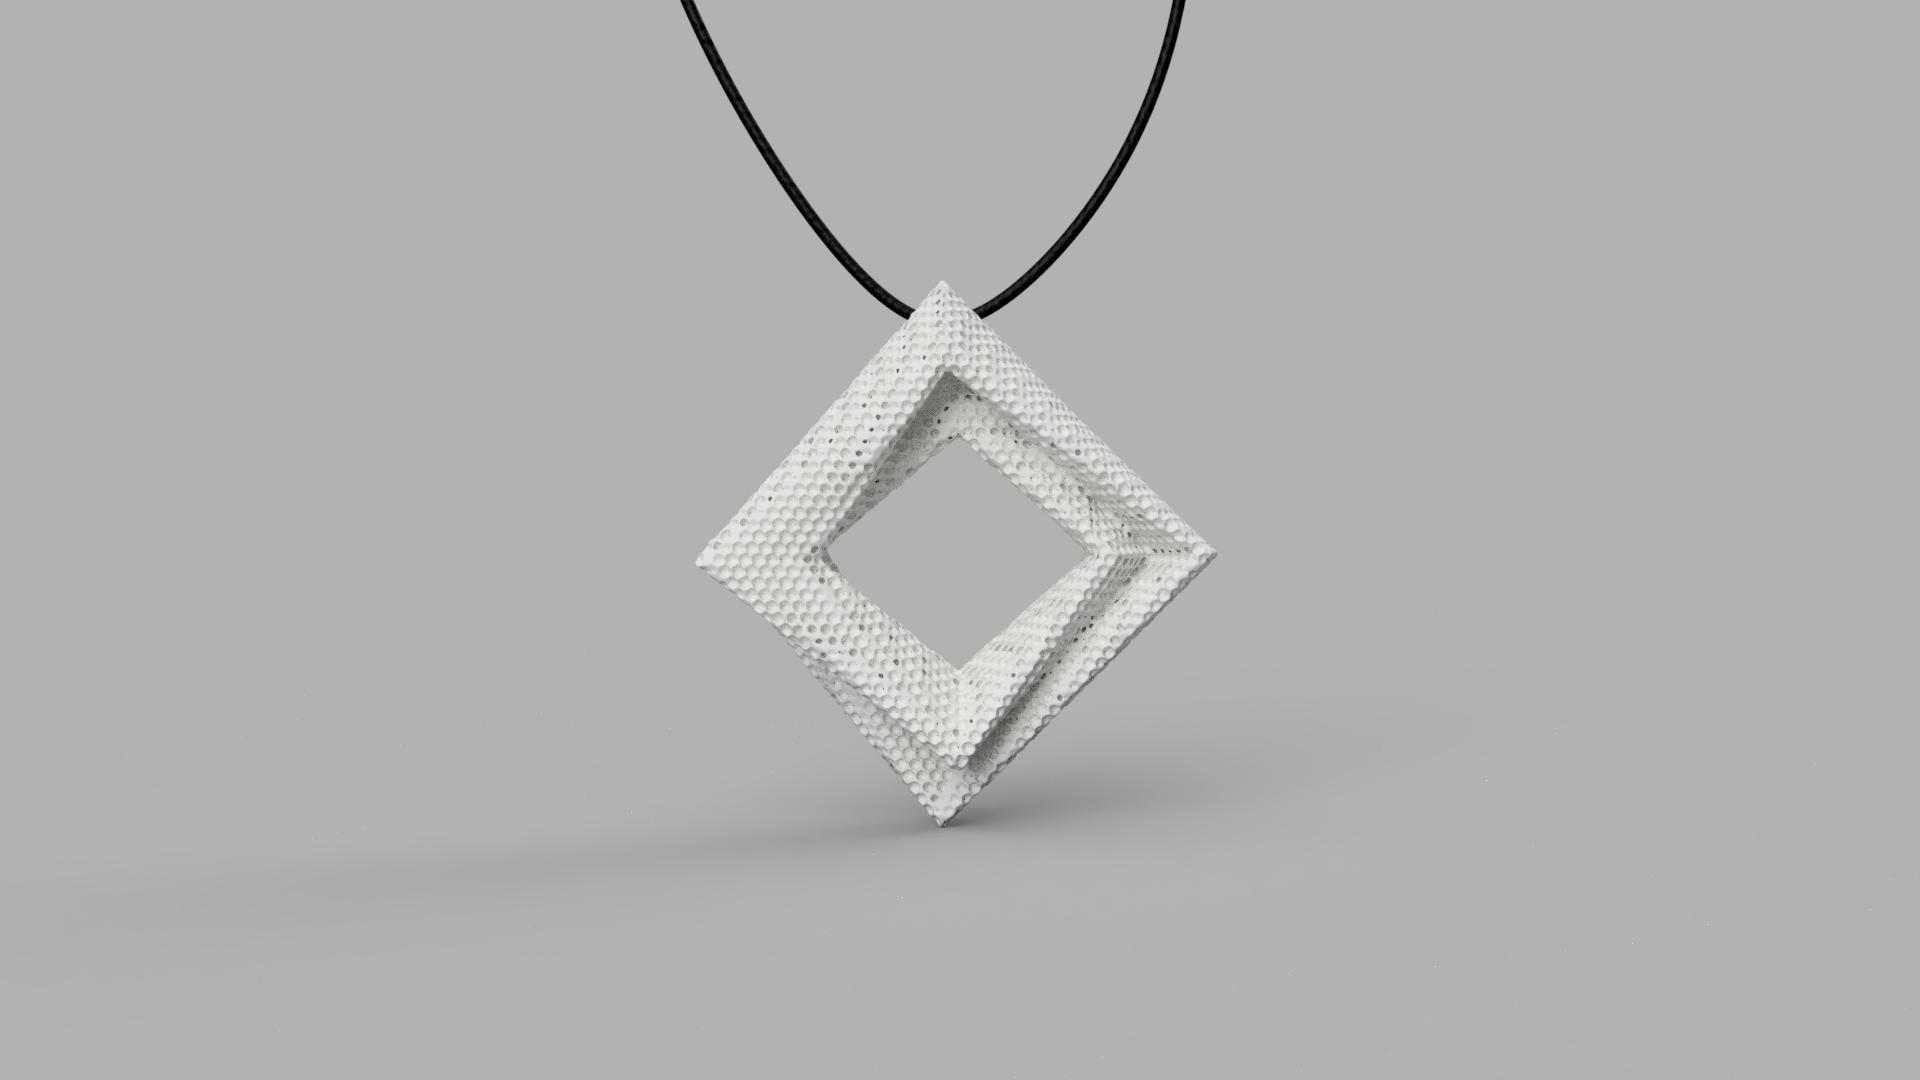 graphic from will the you designer charm shapeways learn pendant walk process design skillshare a hughes classes using through susan to printed